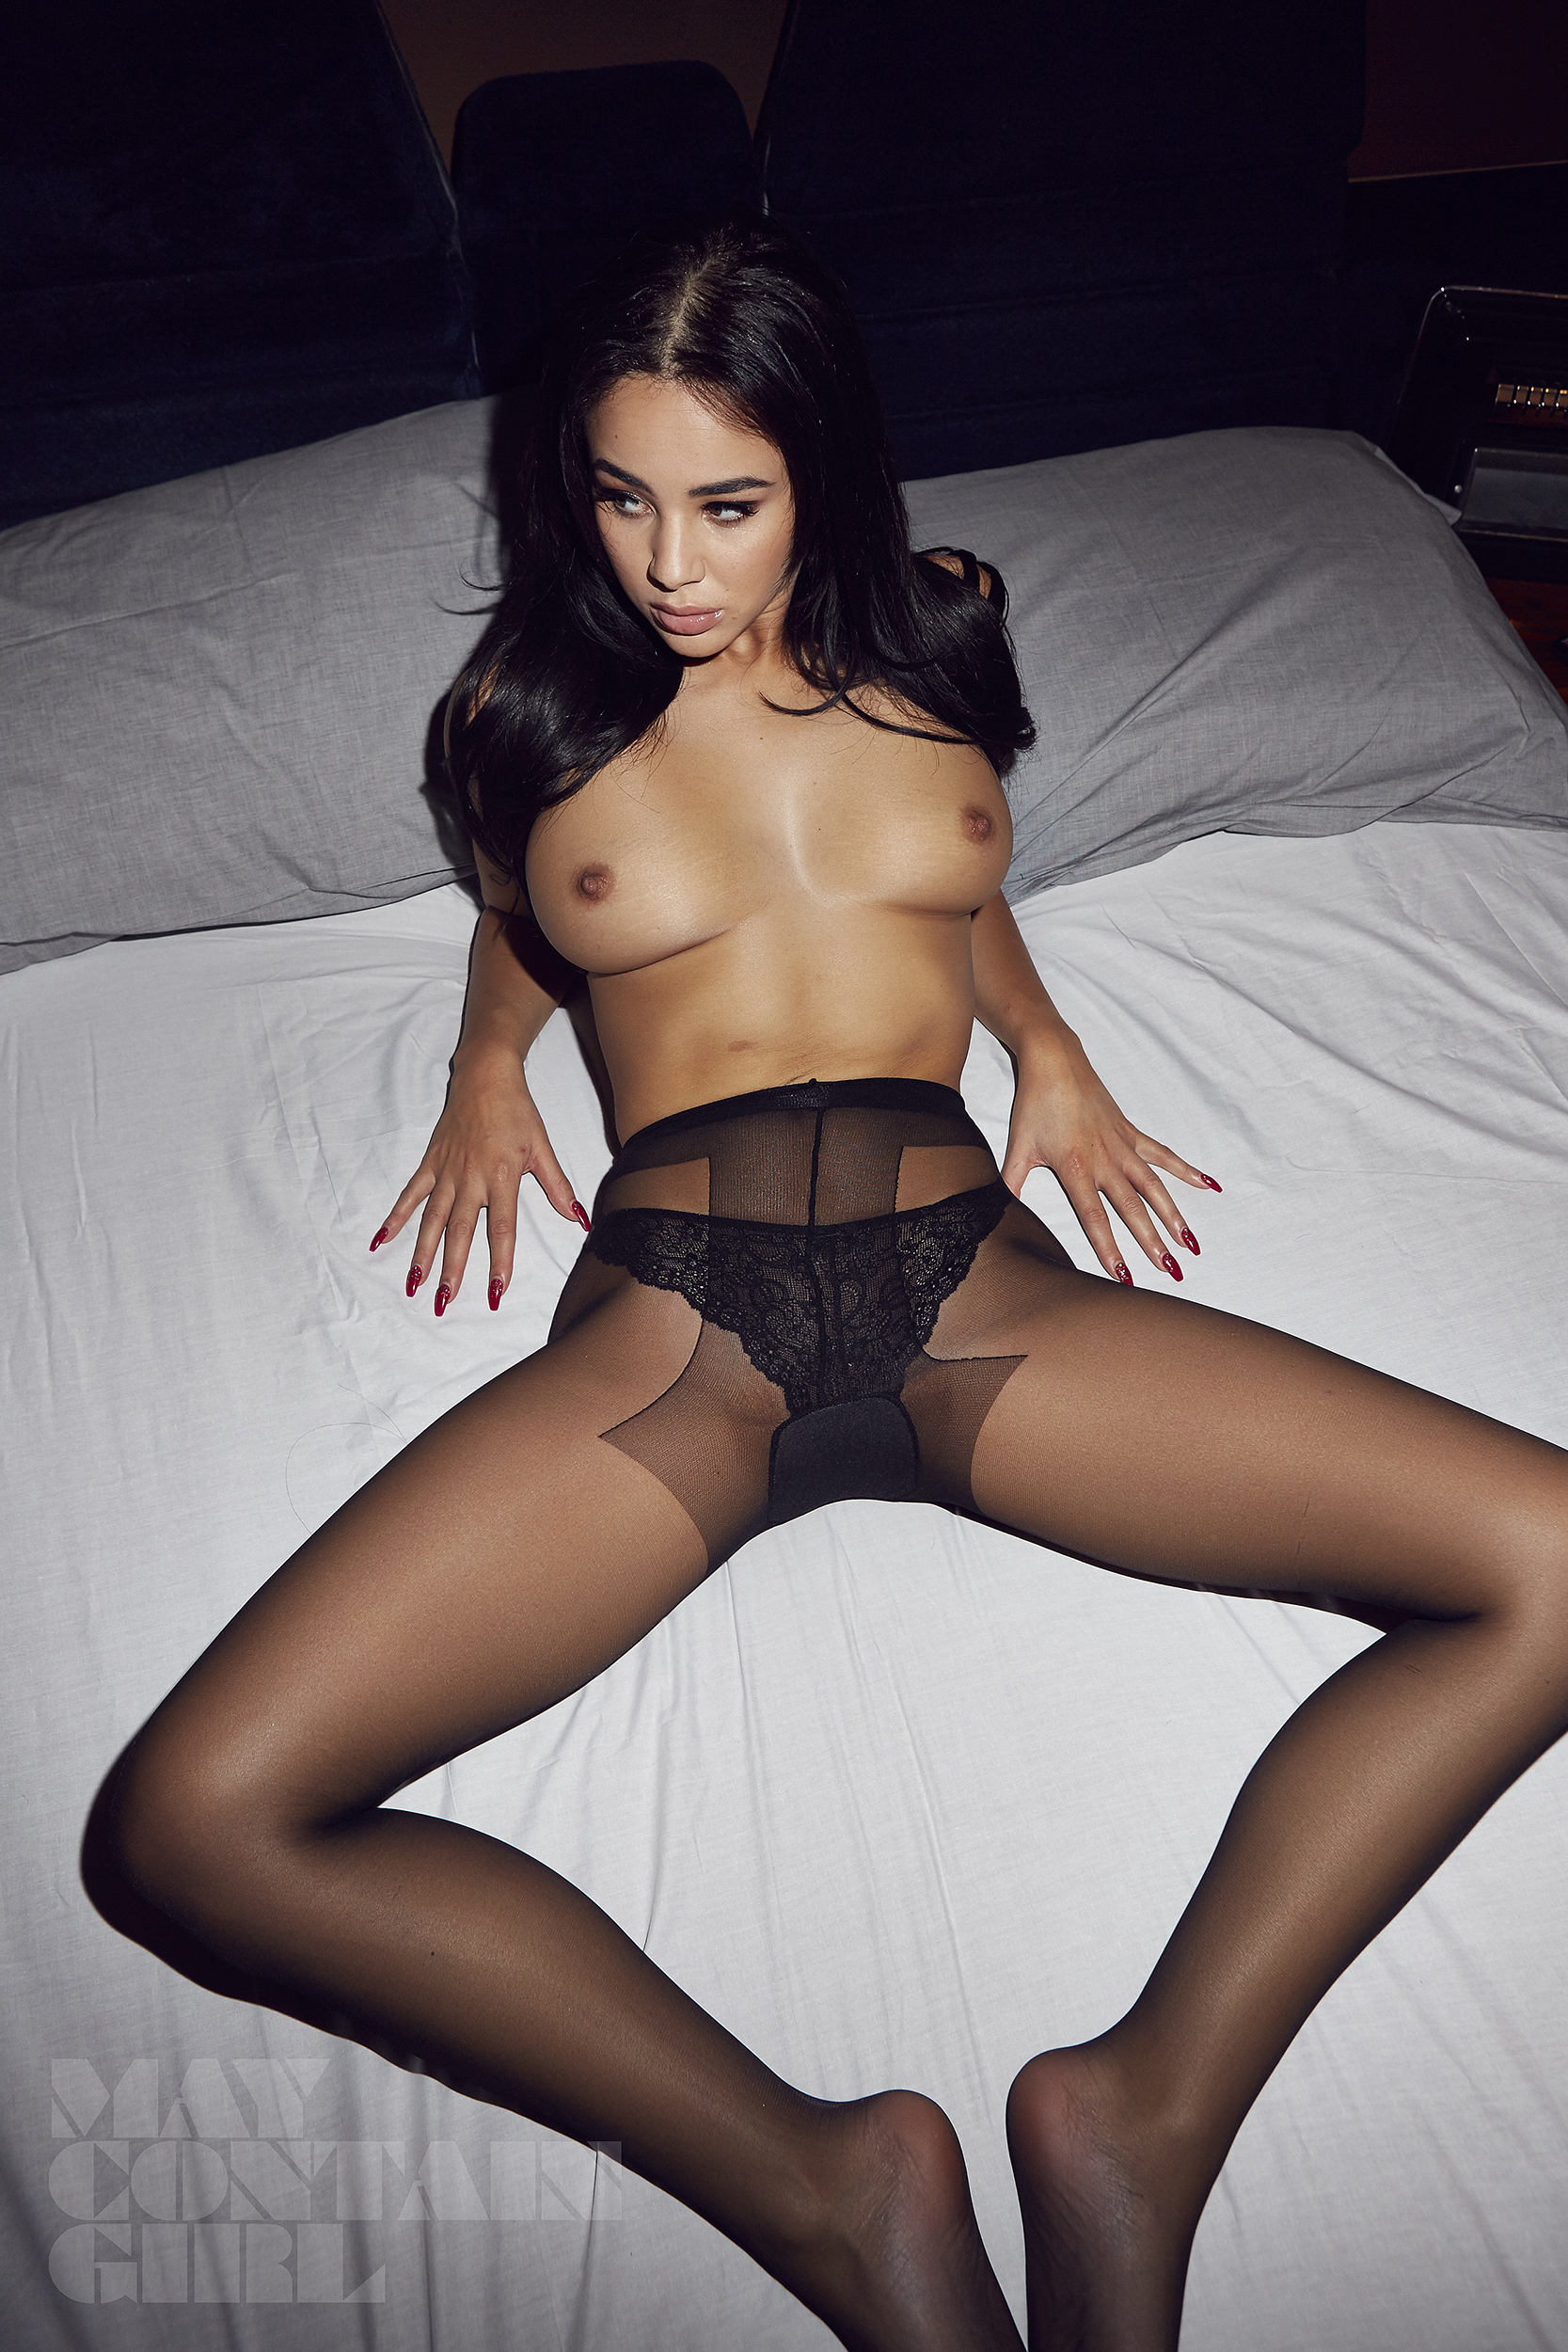 Nude Photos Of Courtnie Q...